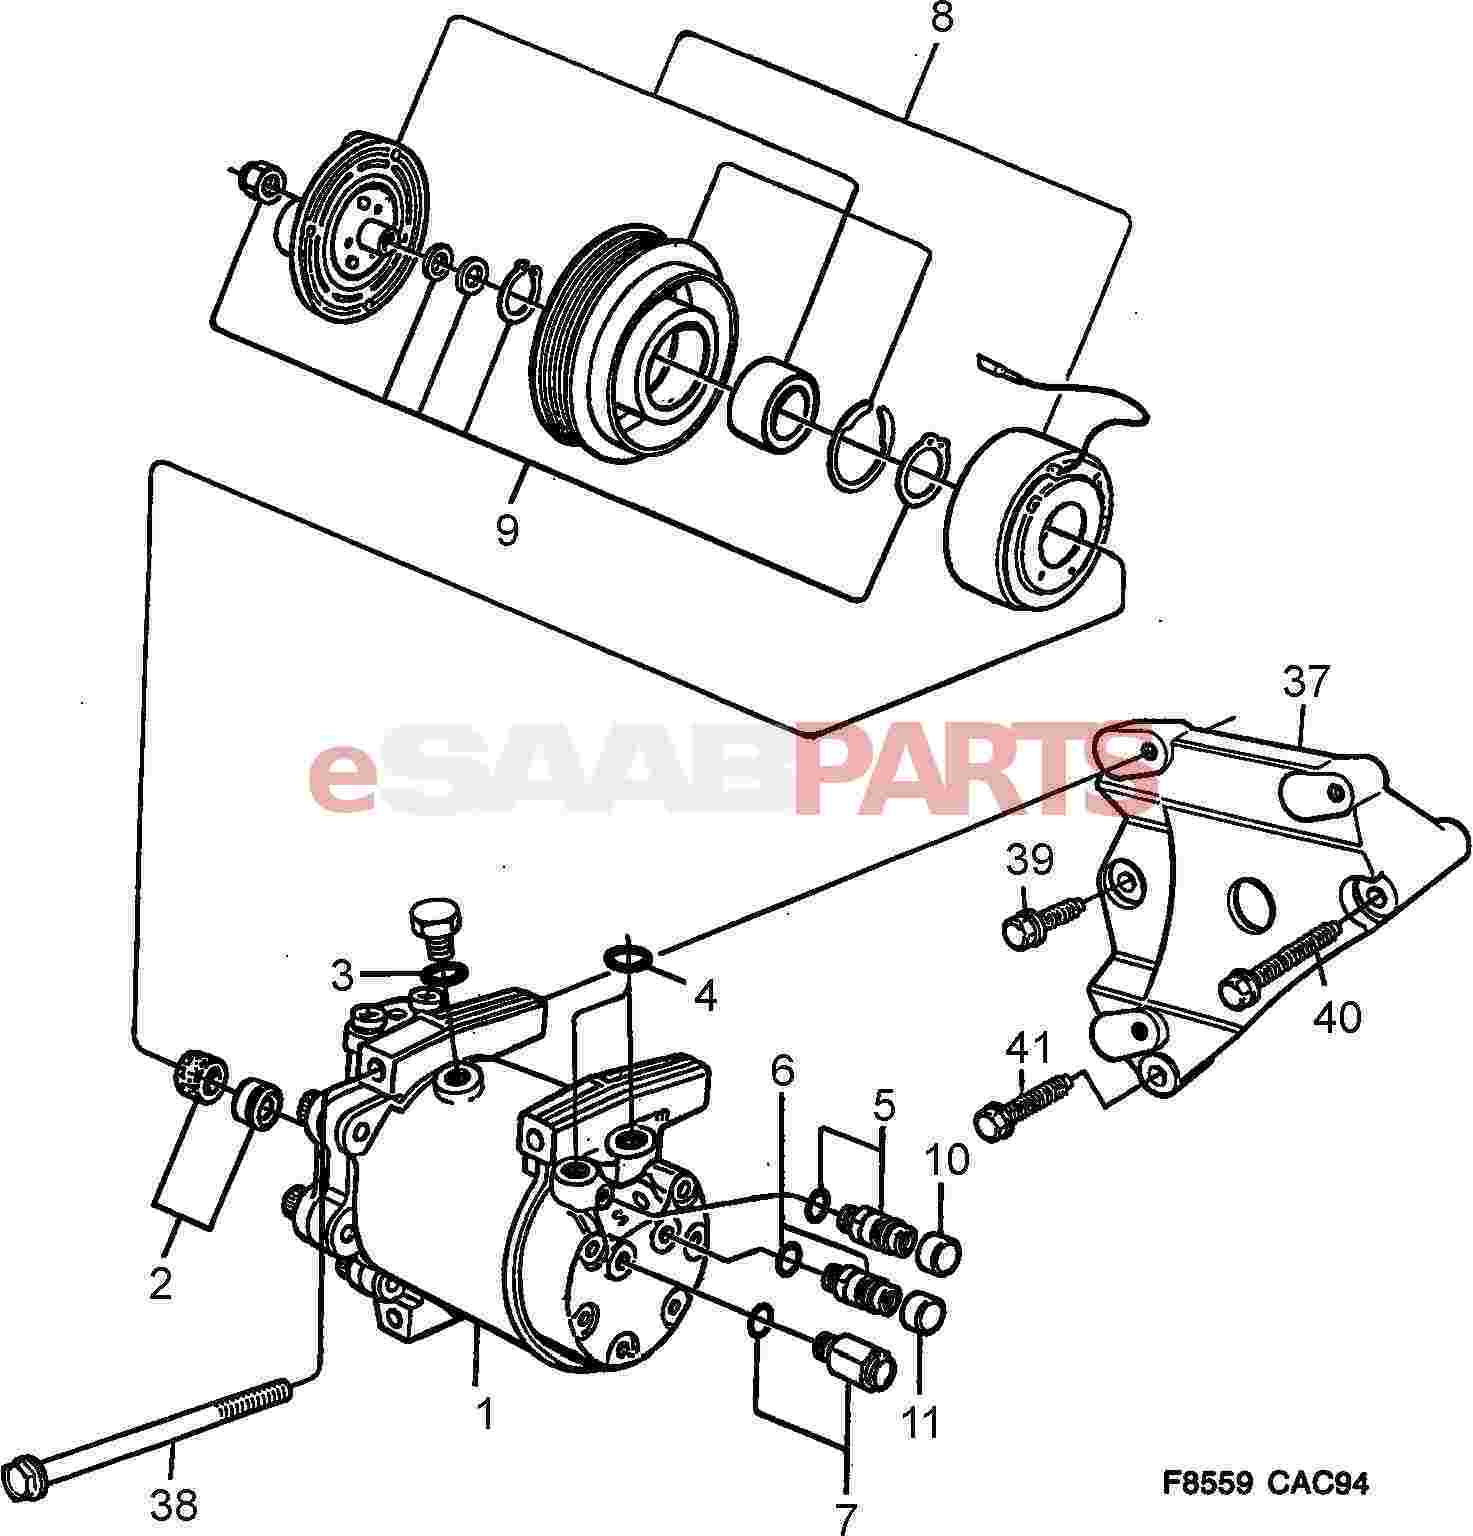 Saab 9 3 Convertible Wiring Diagram Wiring Diagram